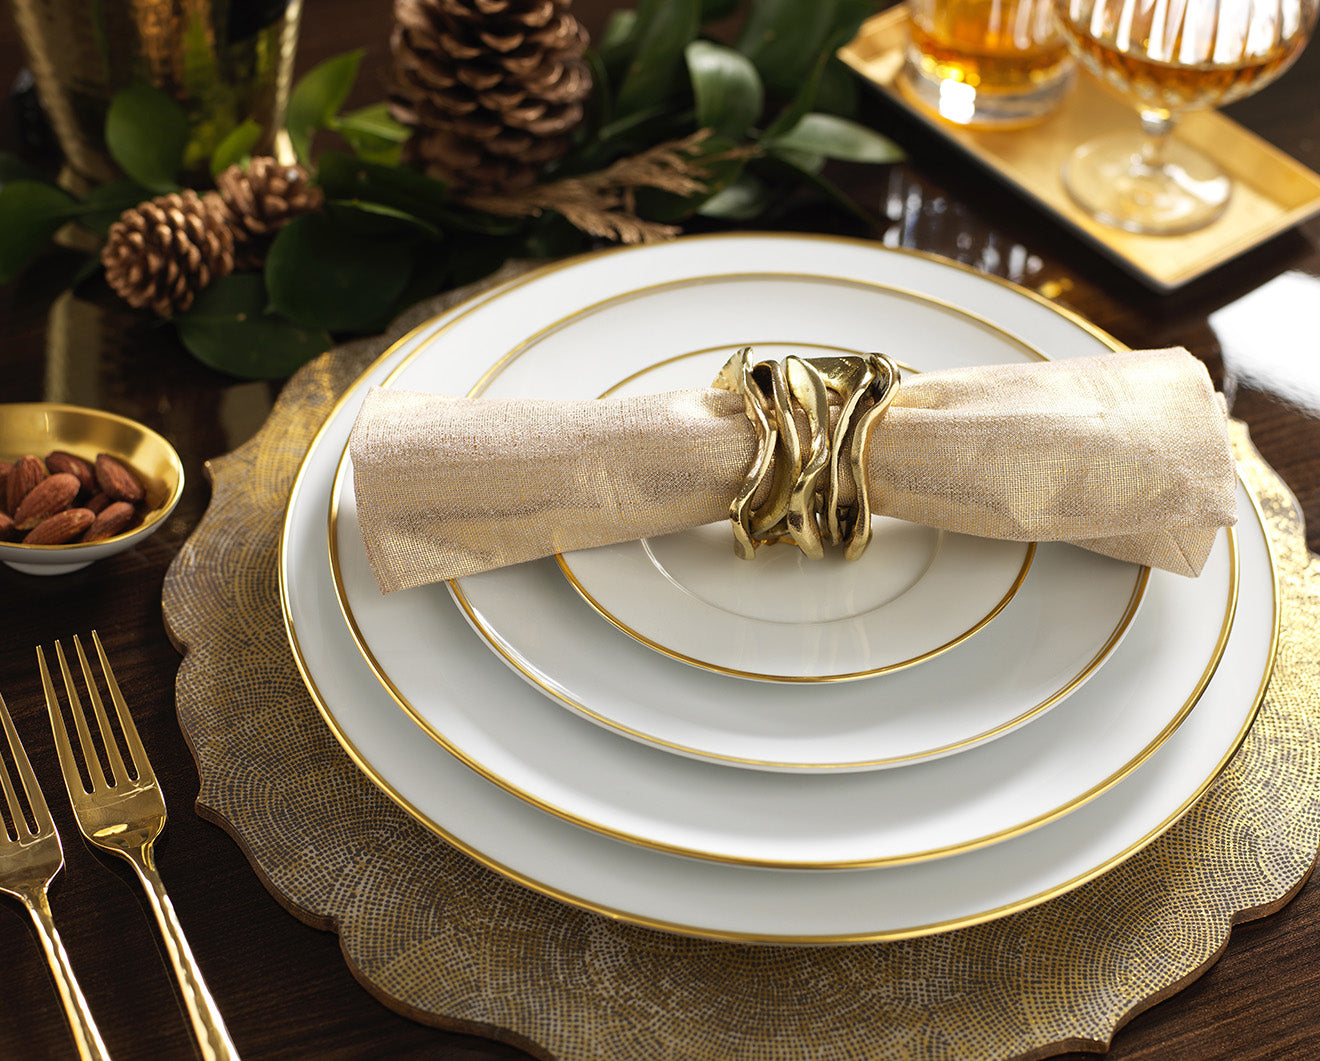 Luxury Christmas table setting with white and gold crockery